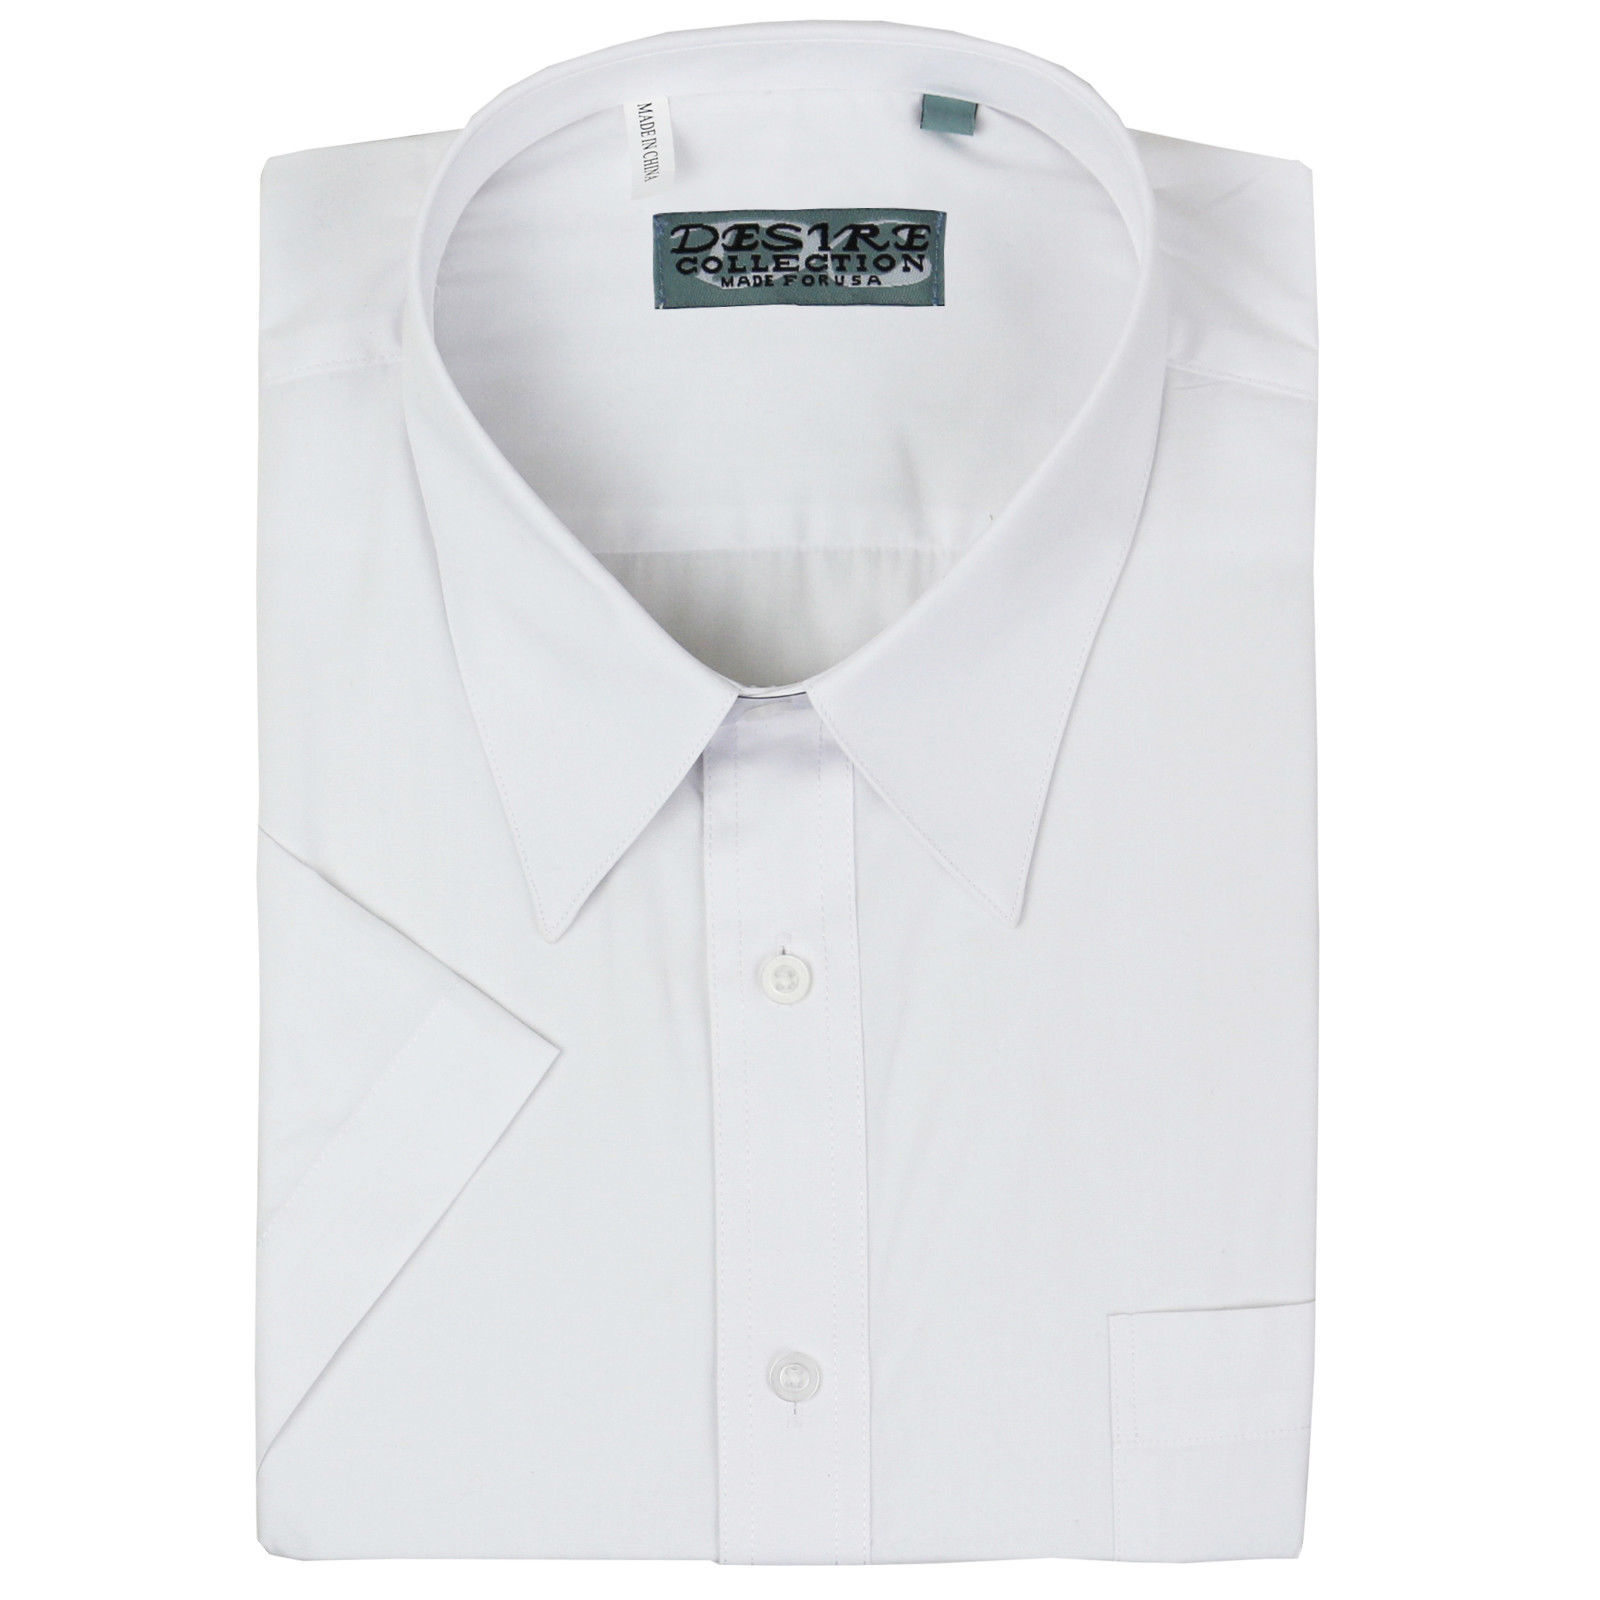 Desire Men's Premium Classic Button Down Short Sleeve Solid Dress Shirt White